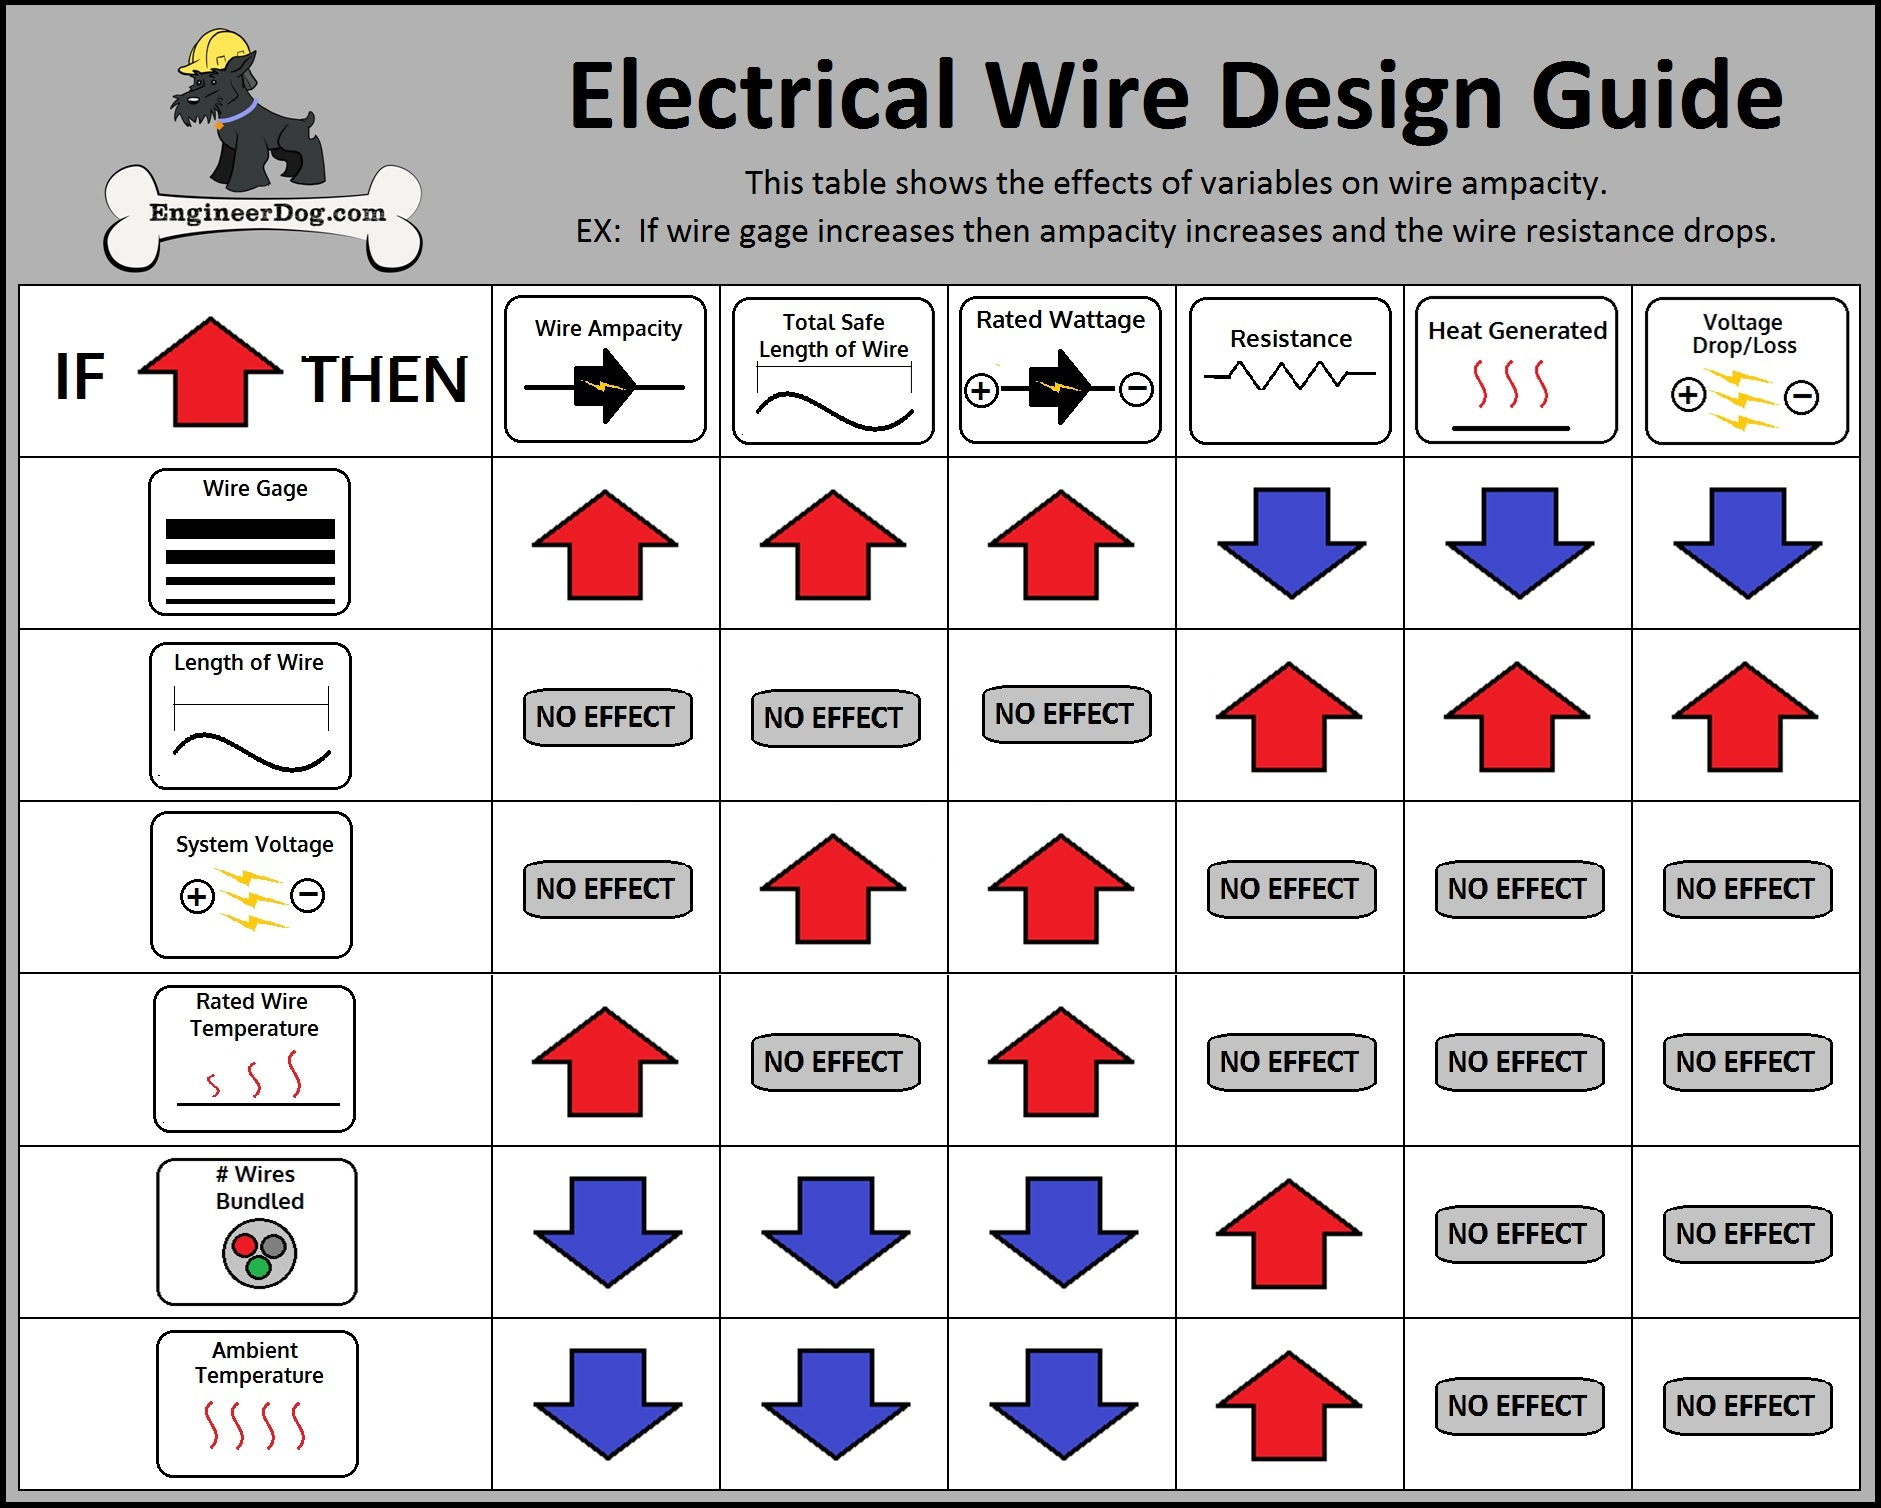 home wiring amp rating wiring library home wiring for dummies home wiring amp rating [ 1881 x 1508 Pixel ]